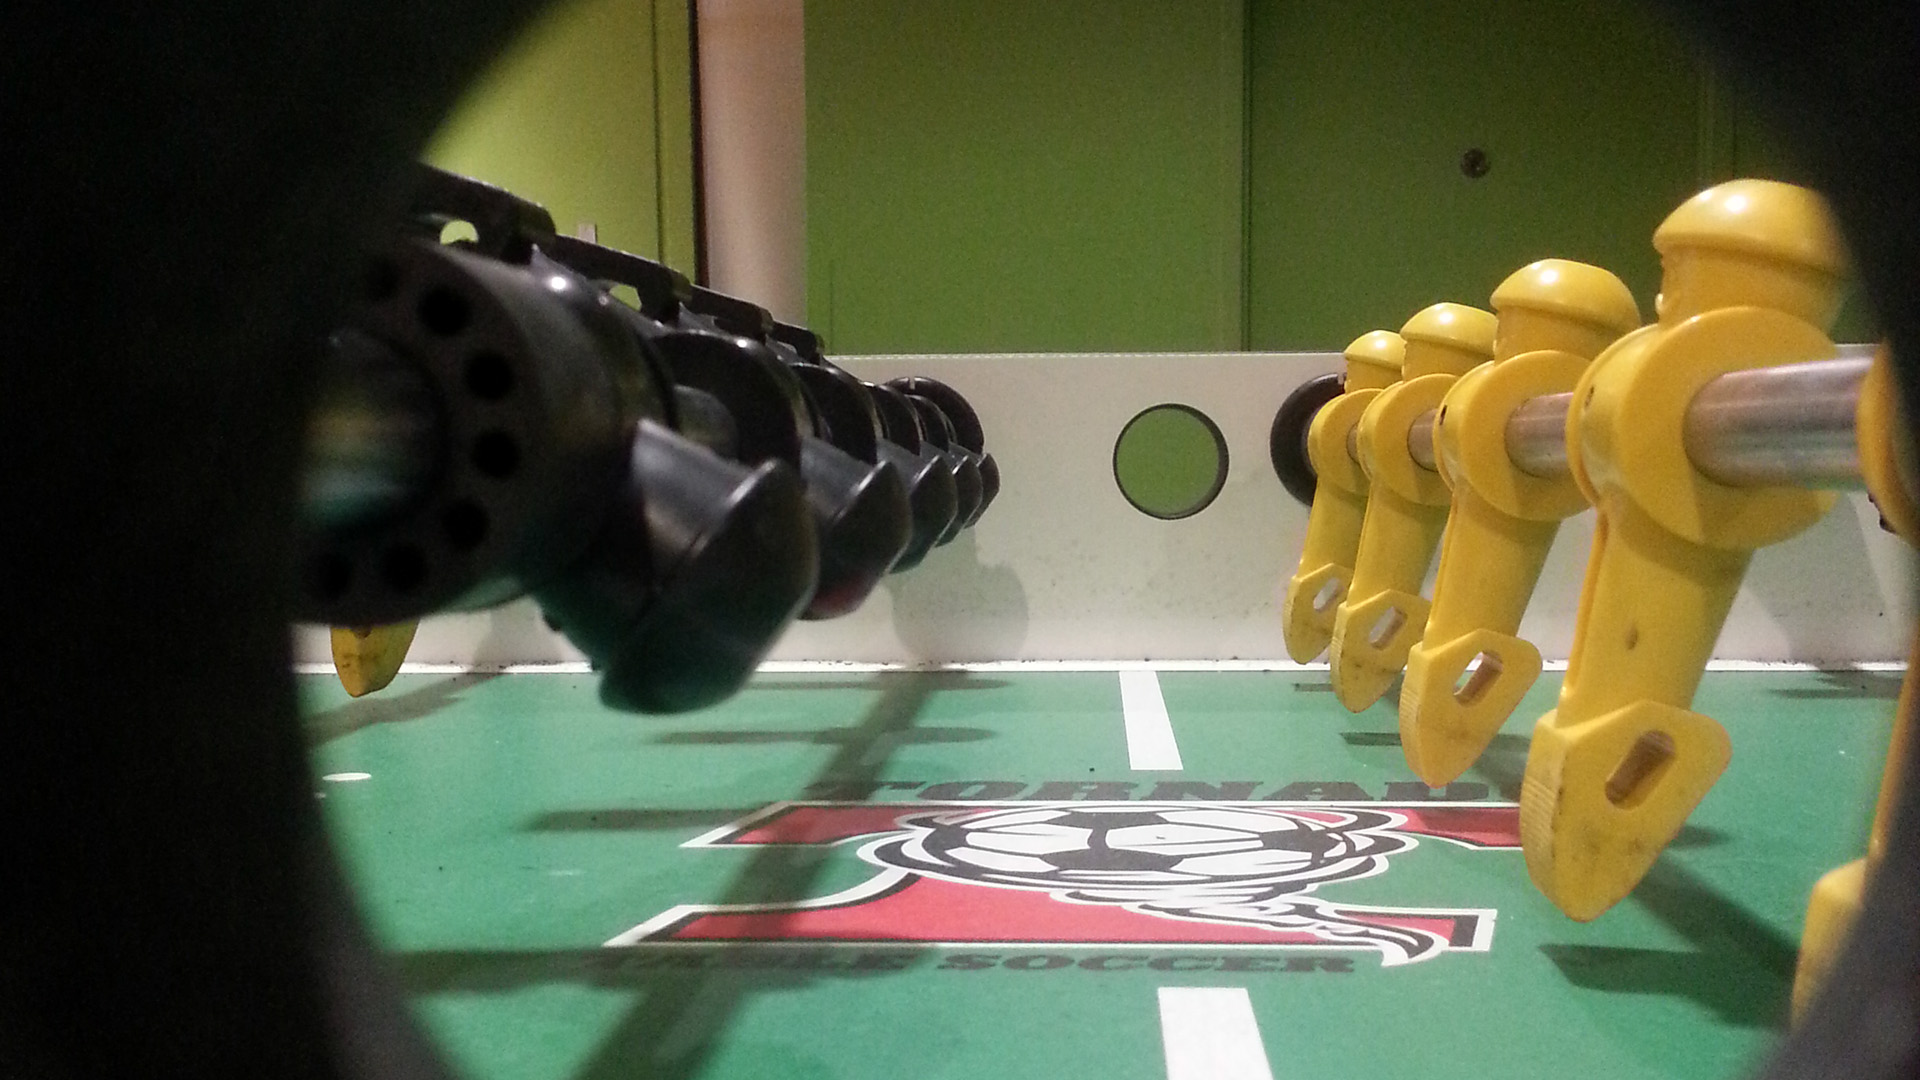 """Photo of a Foosball table with the camera lens in the midfield hole for dropping the ball, so the feeling is of a """"player level view"""" of the field"""